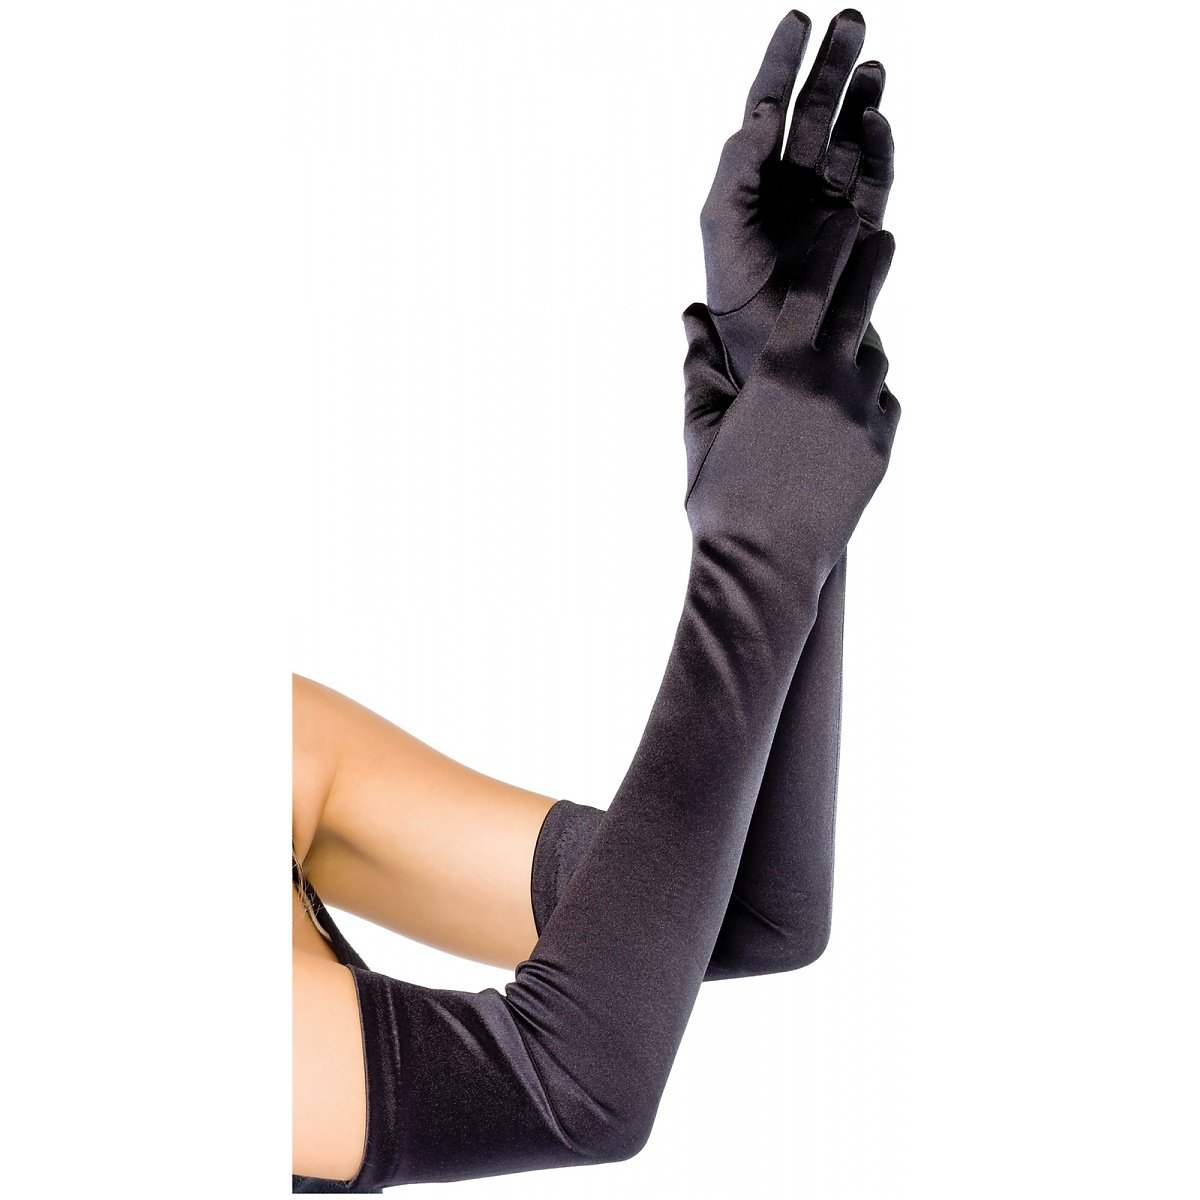 Compare Prices on Women Dress Gloves- Online Shopping/Buy Low ...